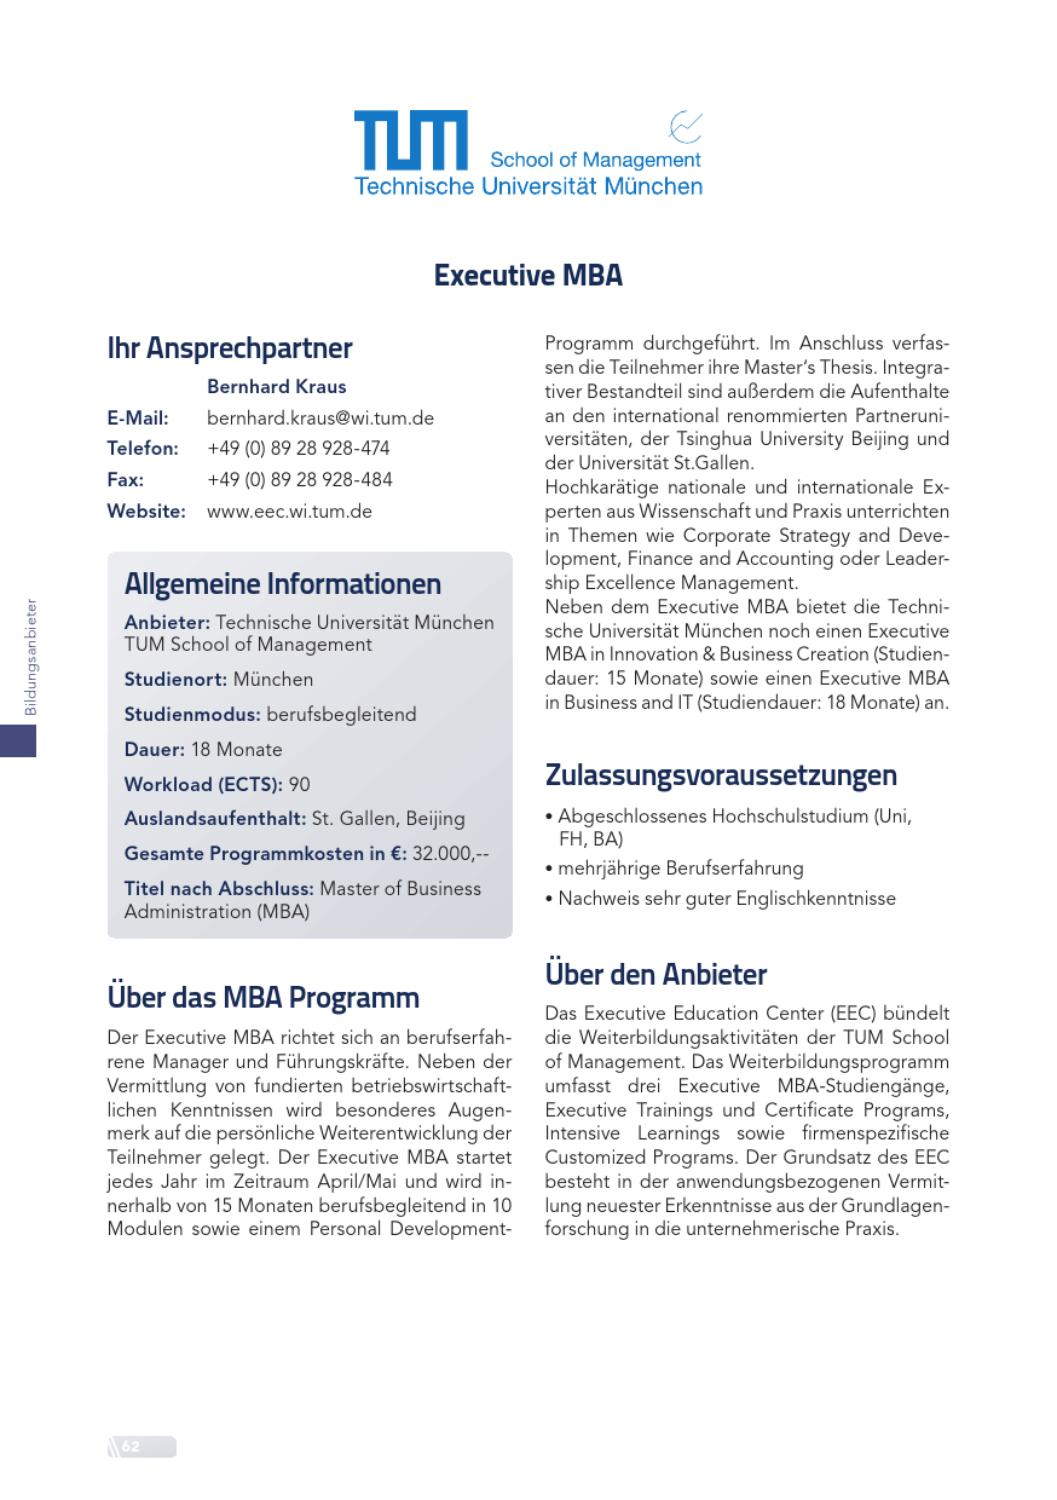 Mba Guide 2013 By Absolventen At Issuu